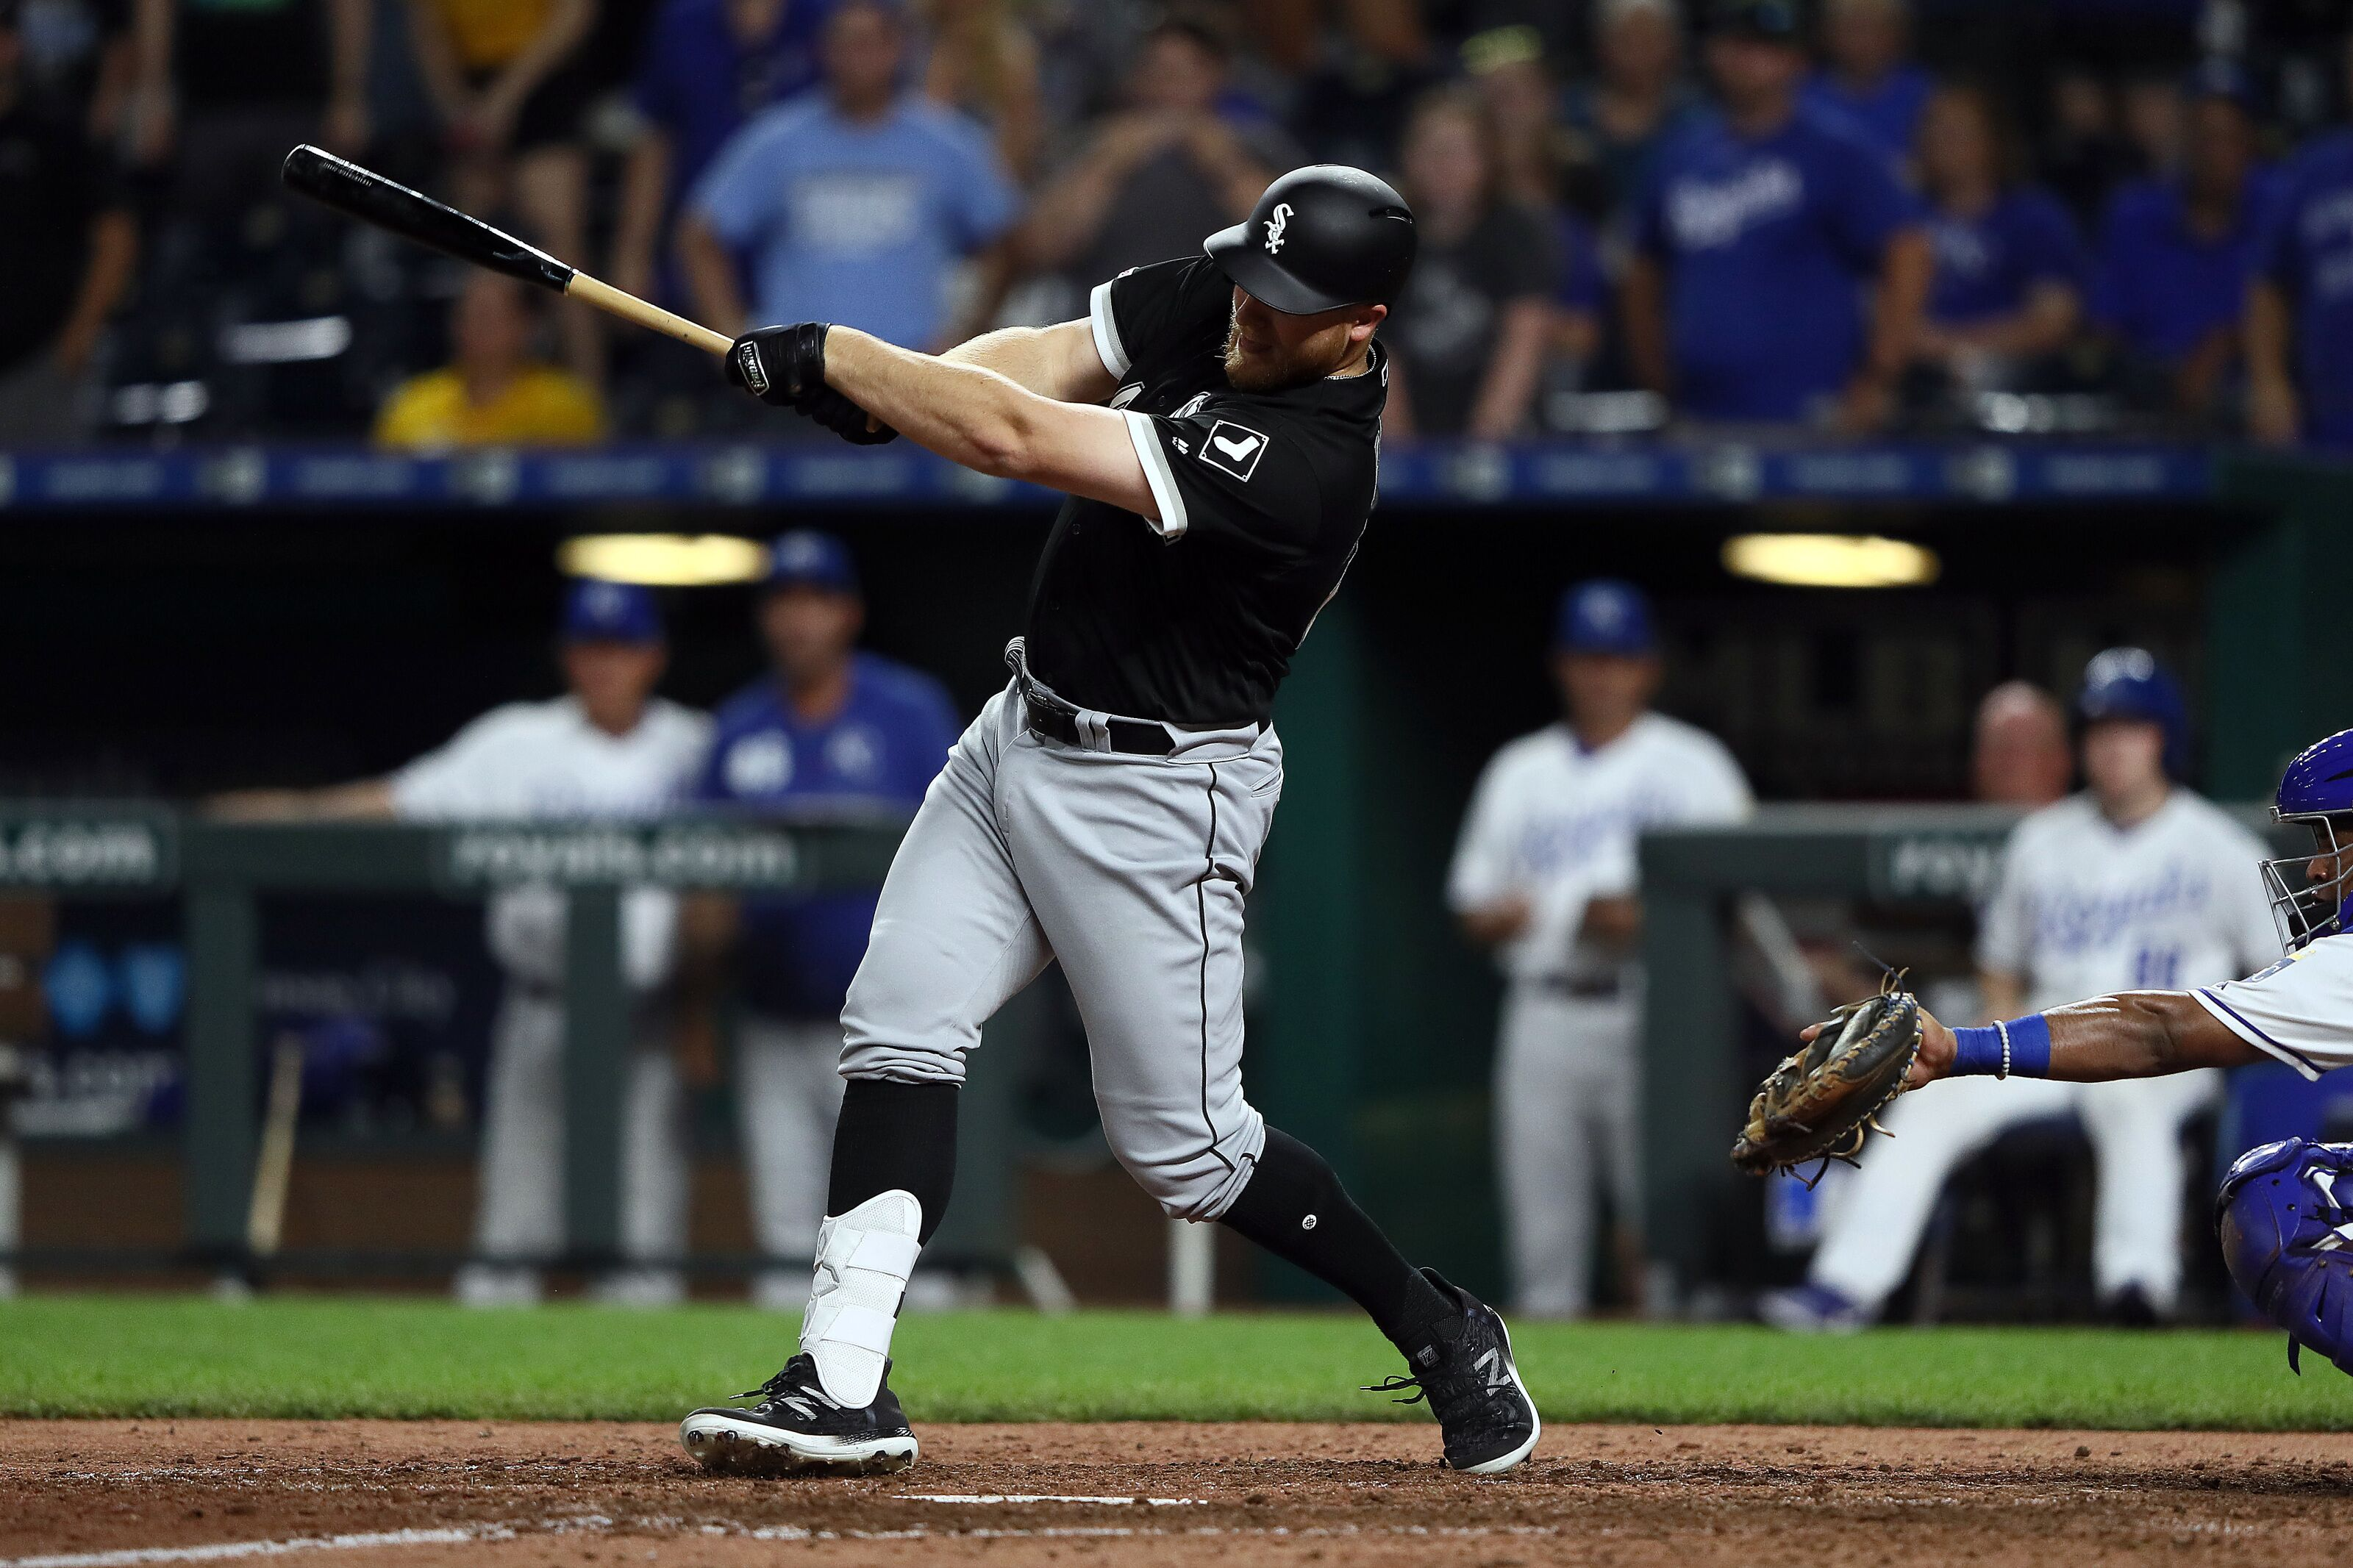 Chicago White Sox: Losing to the Royals once again